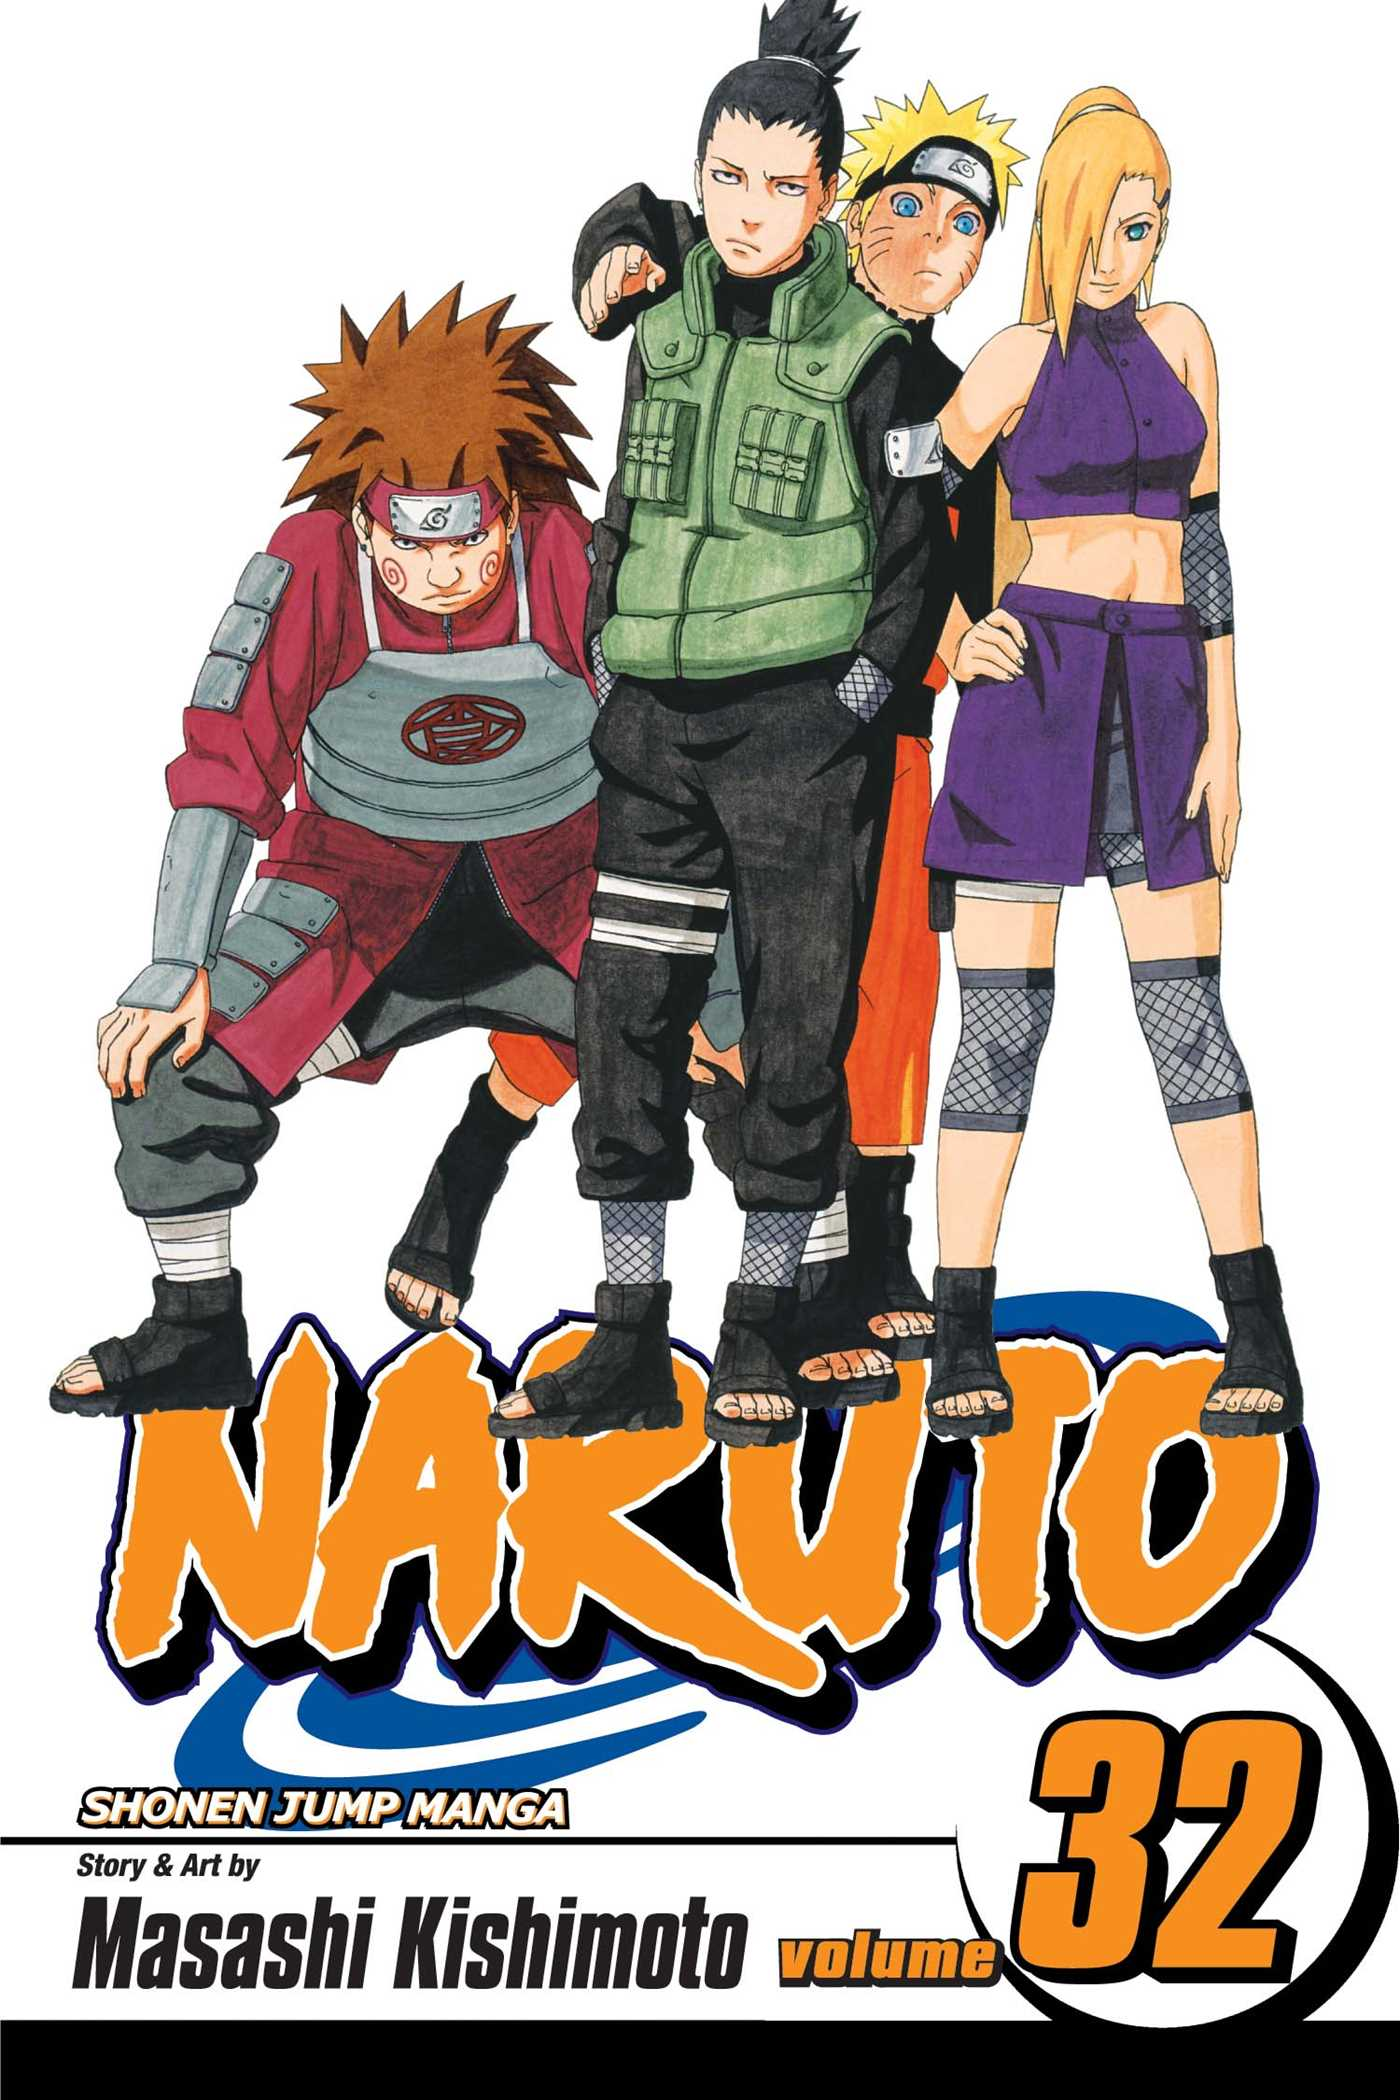 Naruto-vol-32-9781421519449_hr